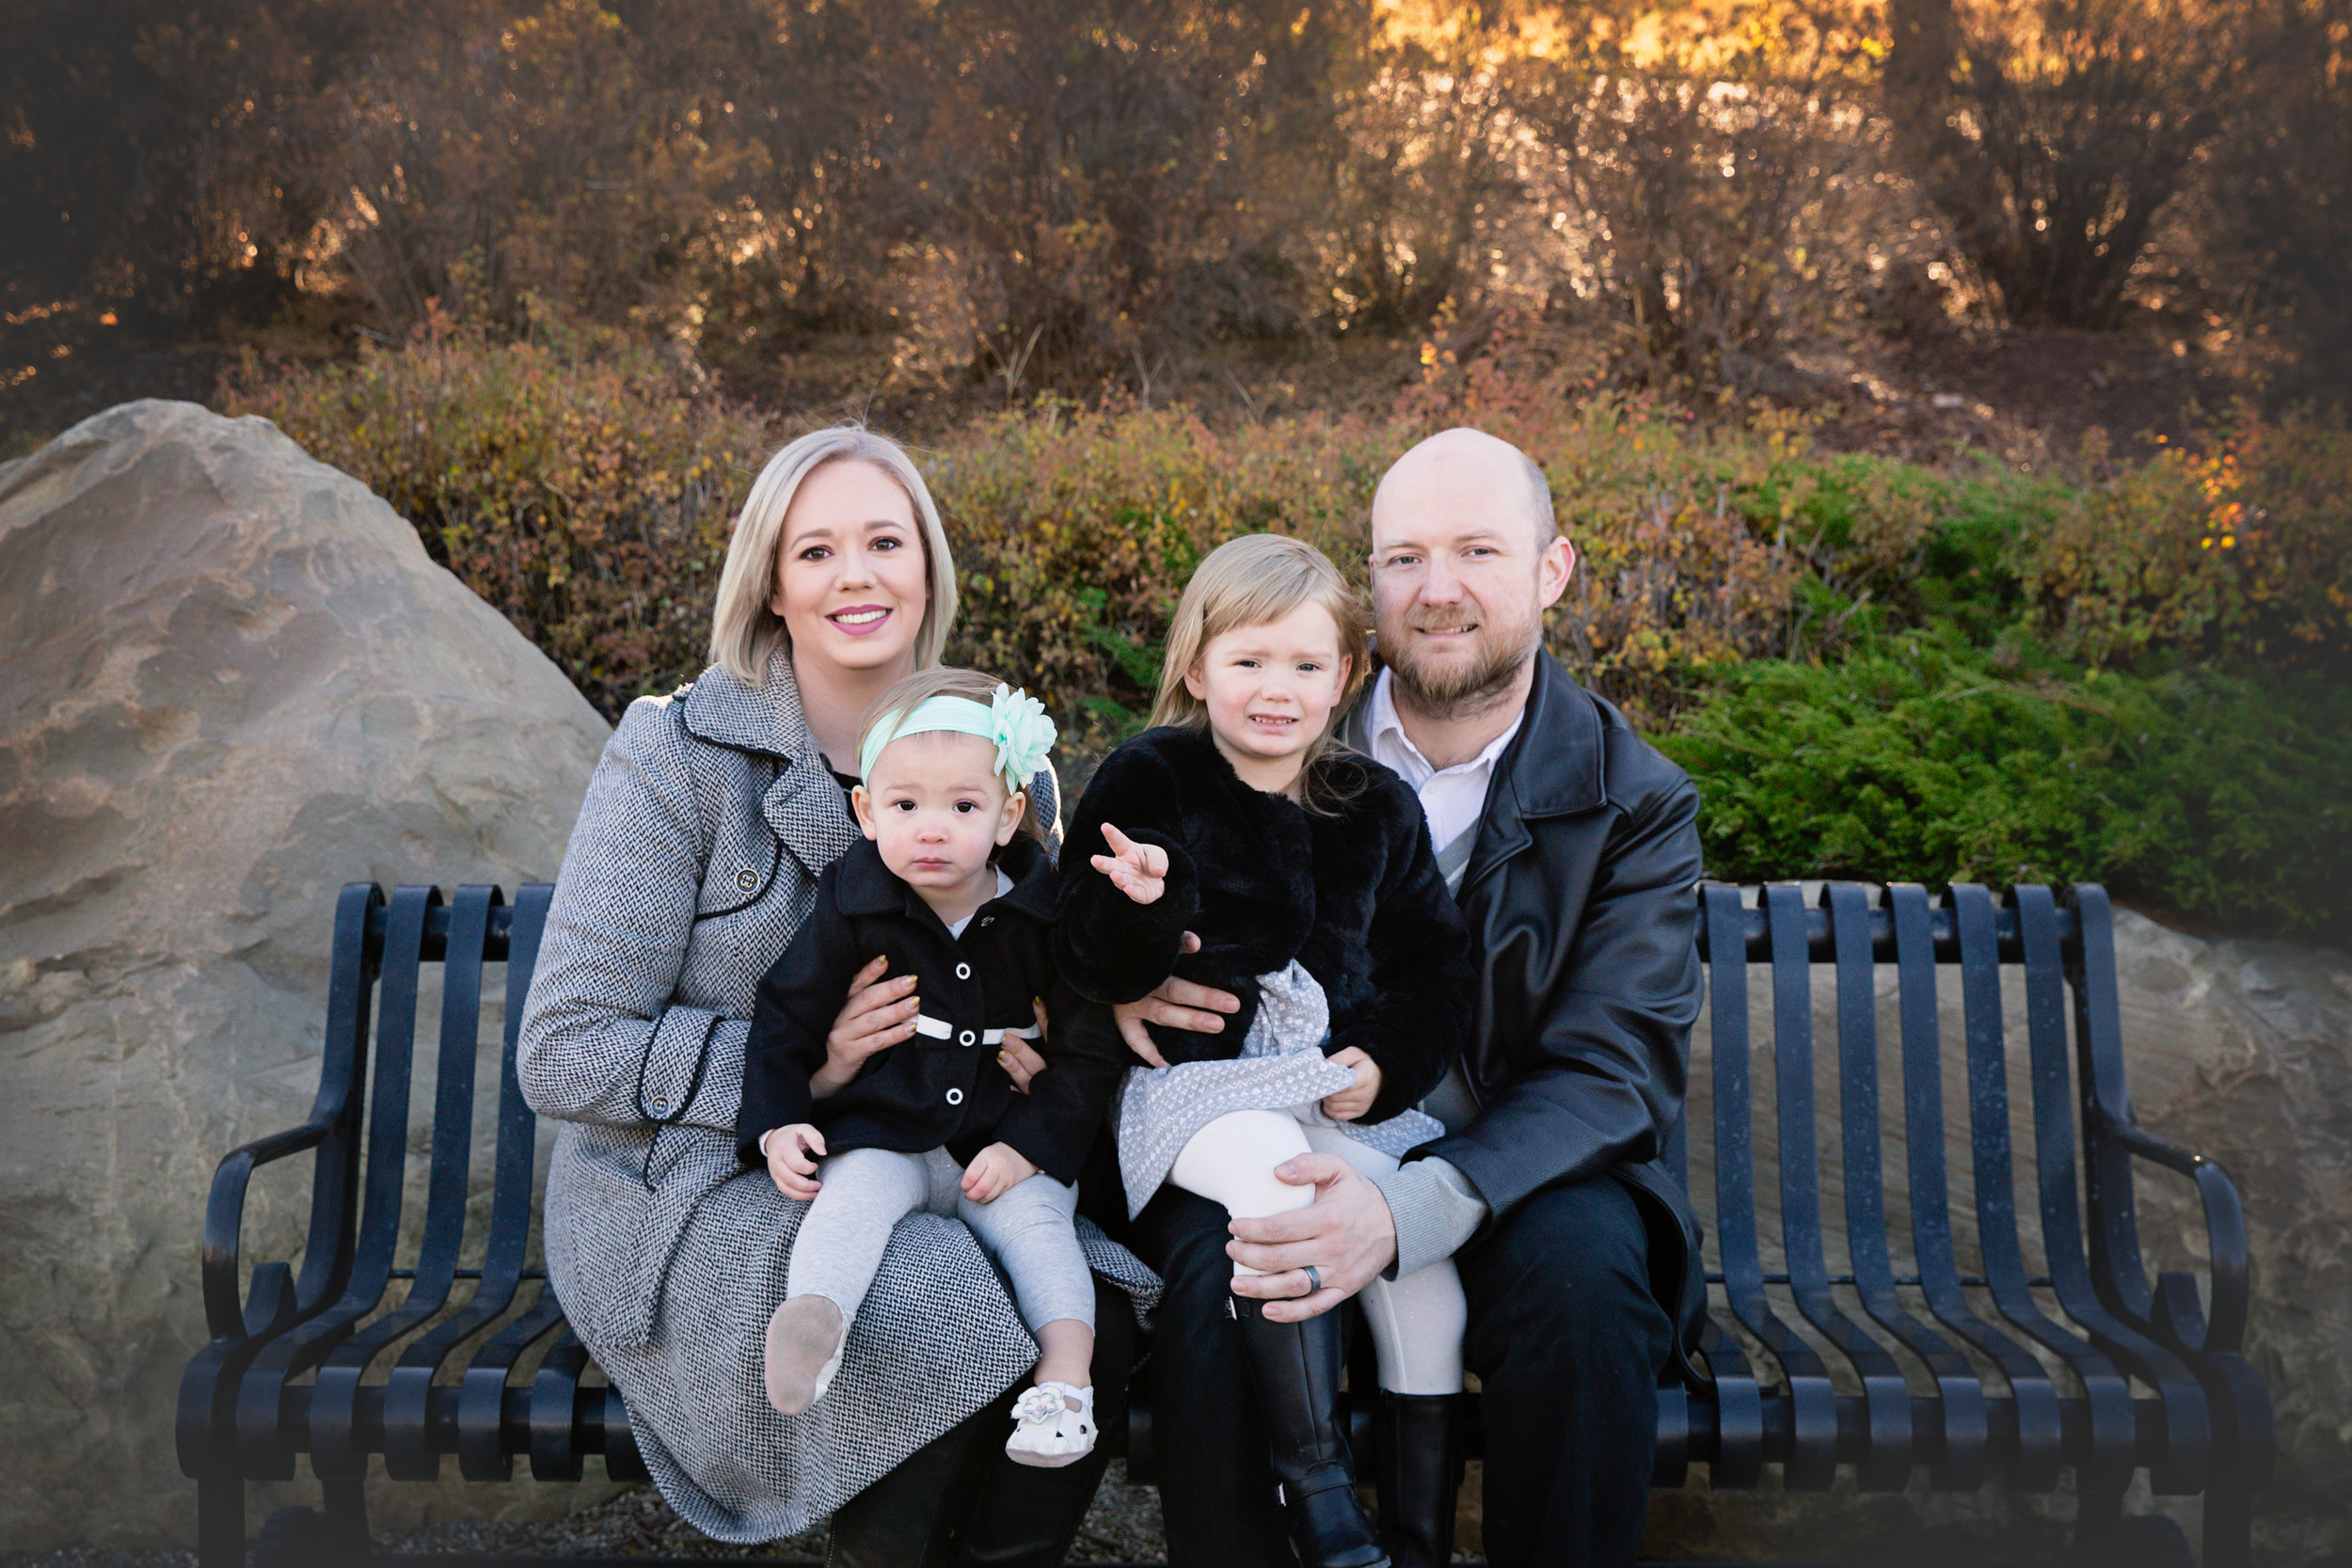 Family of 4 sitting on a bench. Calgary family photographer. Milashka Photography